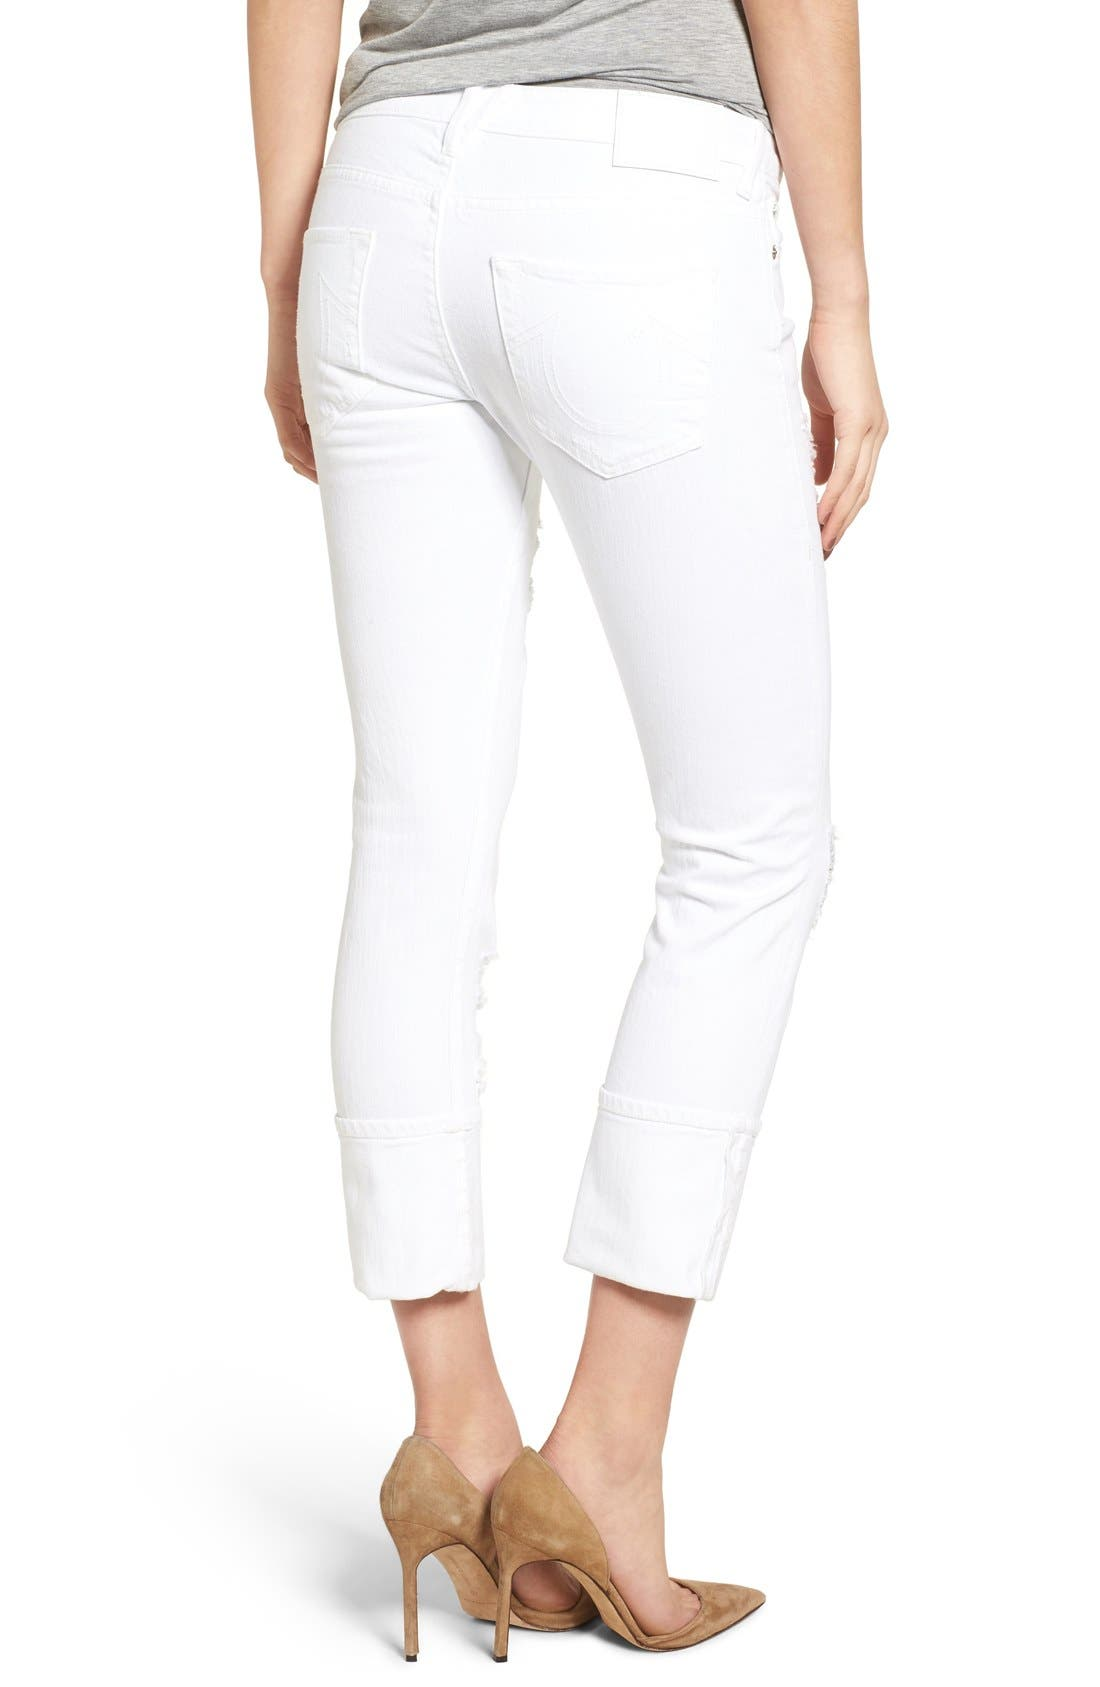 Liv Relaxed Skinny Jeans,                             Alternate thumbnail 2, color,                             Bright White Destroyed